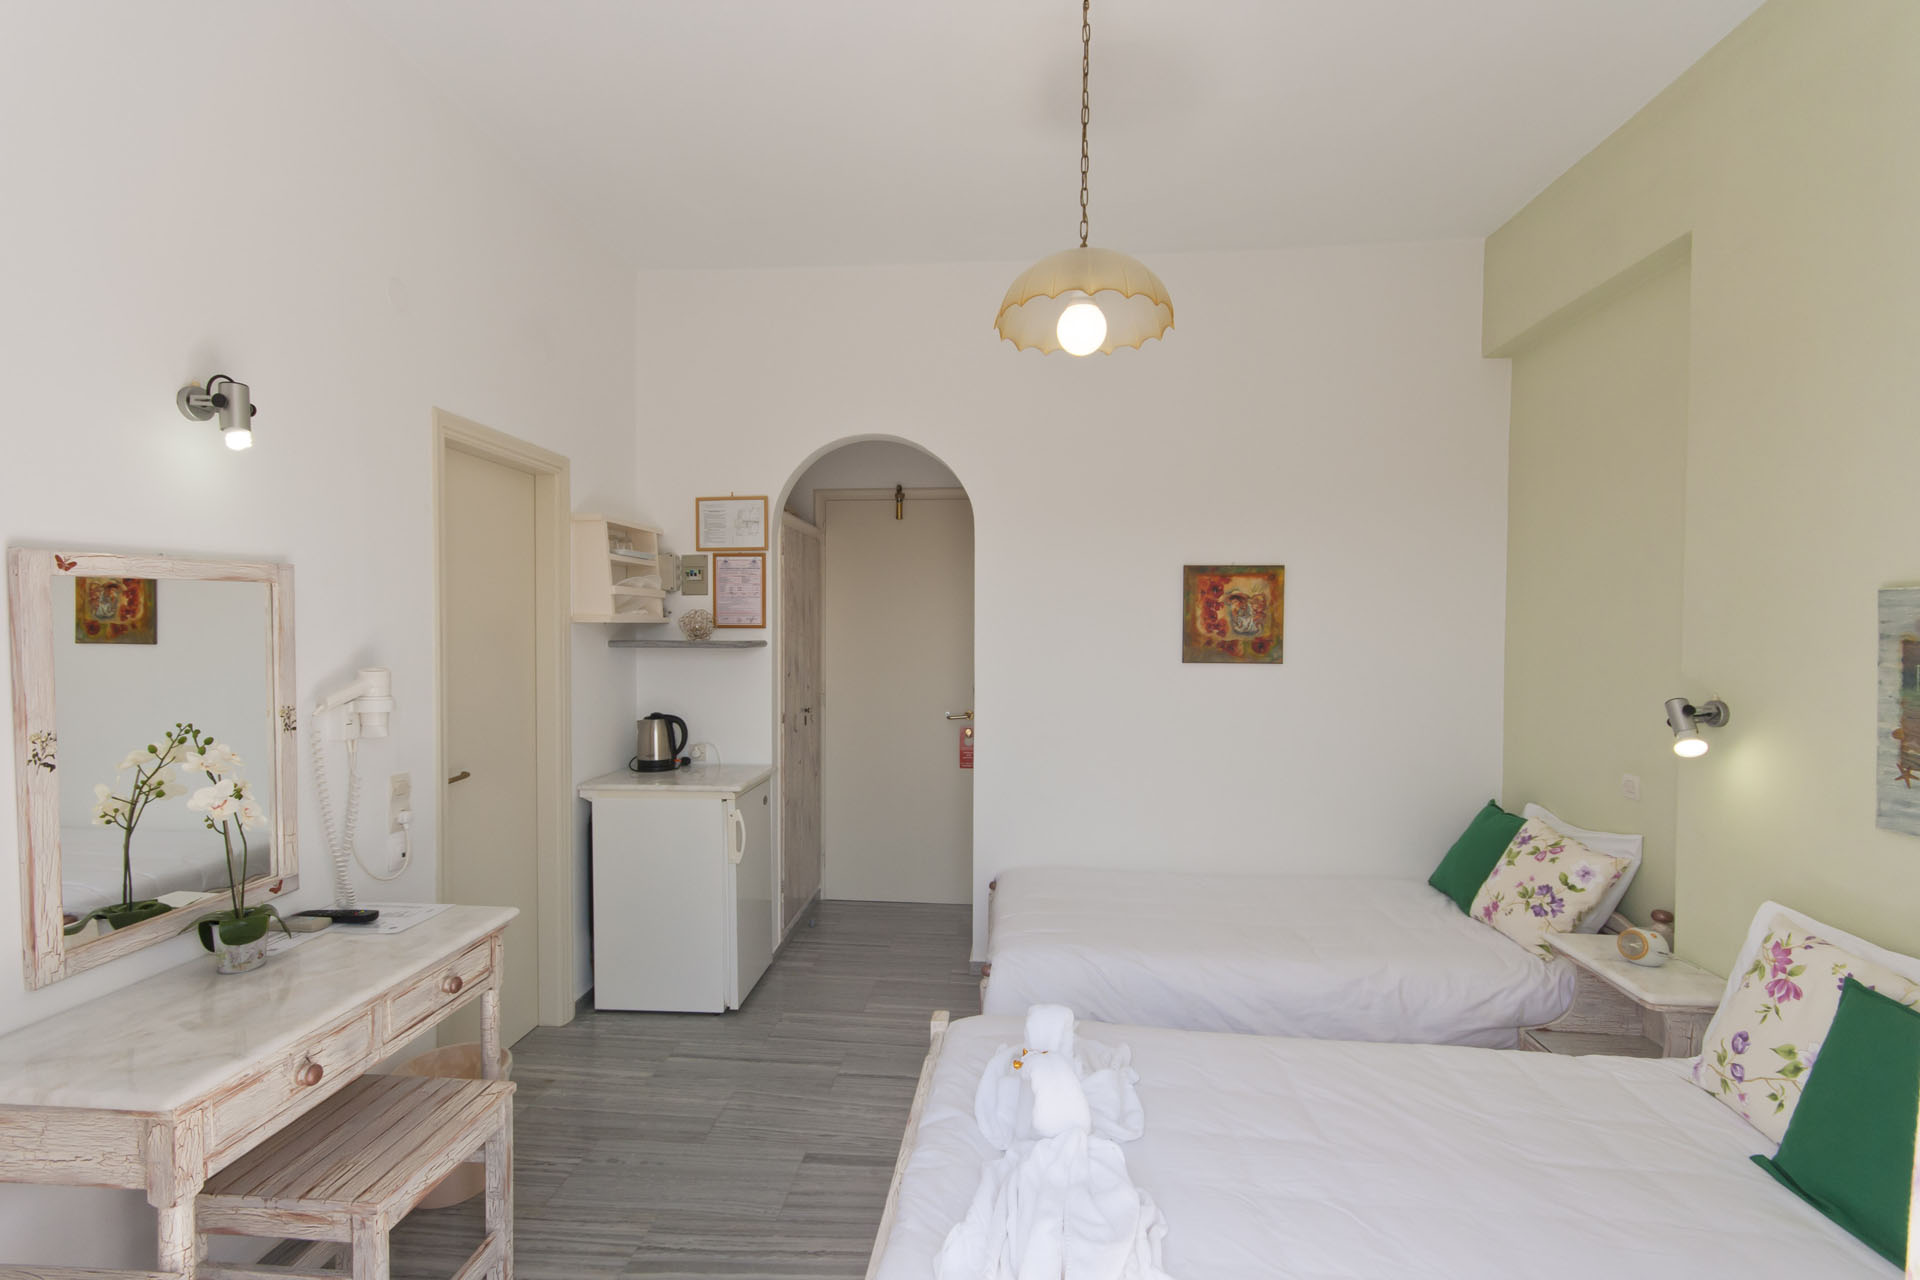 Pension-sofia-triple-room-interior